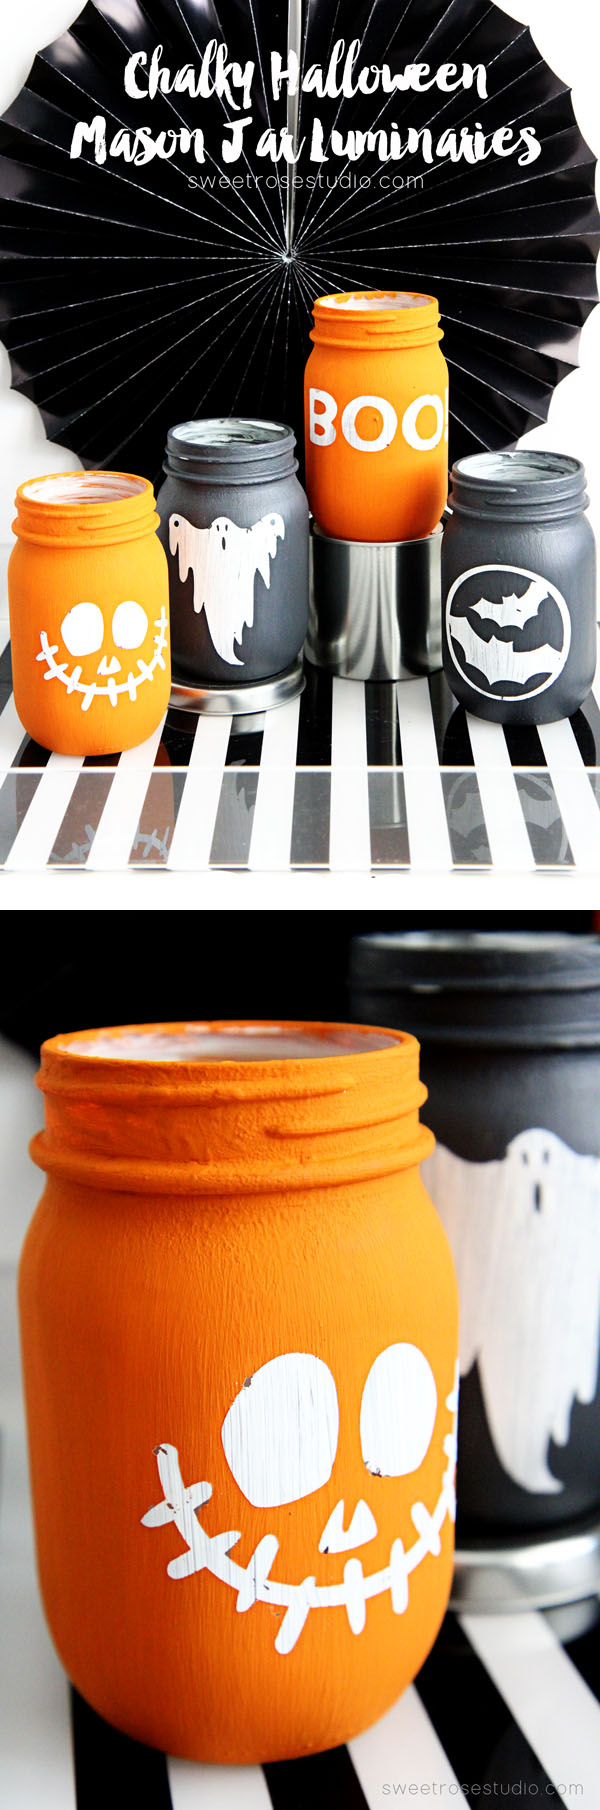 DIY chalky Halloween mason jar luminaries (via sweetrosestudio.com)